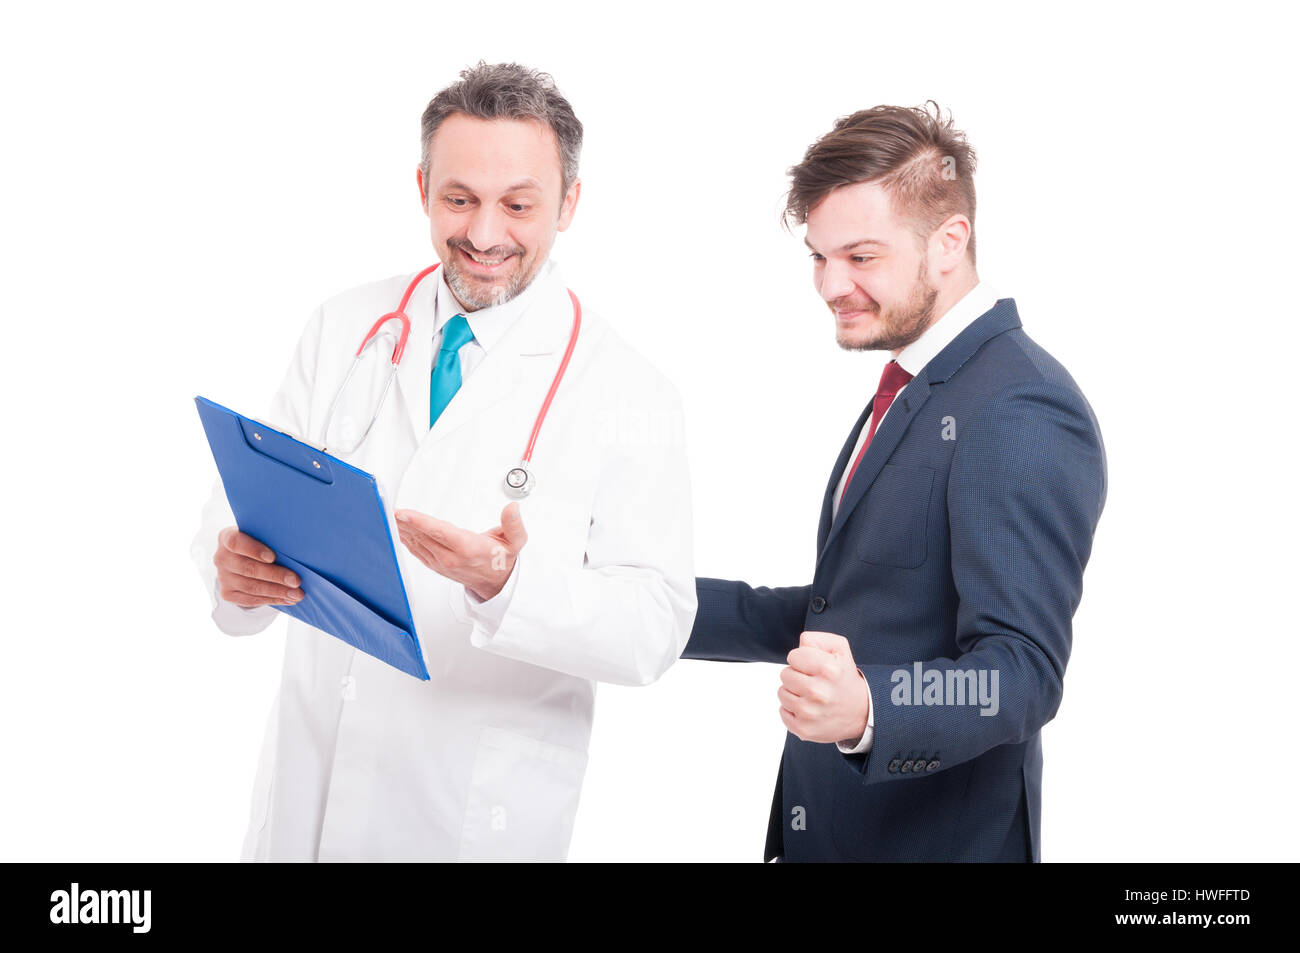 Trustworthy doctor and businessman patient looking happy about medical results isolated on white - Stock Image